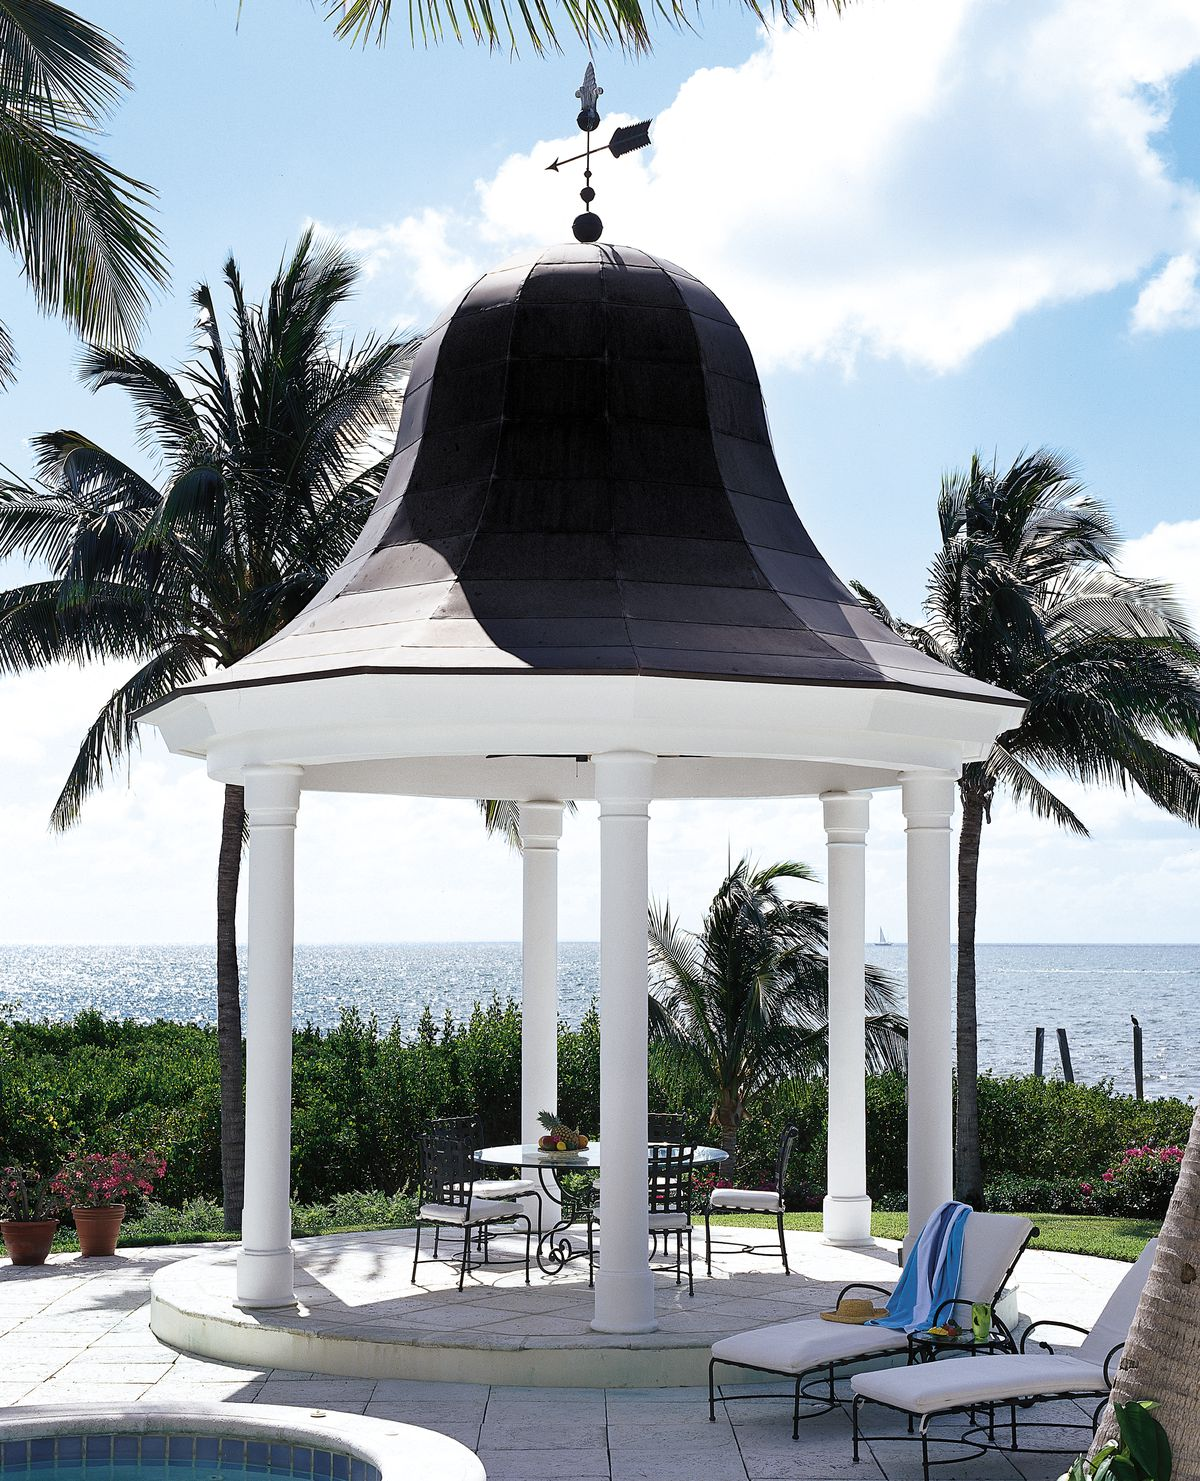 <p>At a home in Key Largo, Florida, a round gazebo with a bell-shaped copper roof provides poolside shelter from the sun — and a cool vantage point for viewing the ocean beyond.</p>